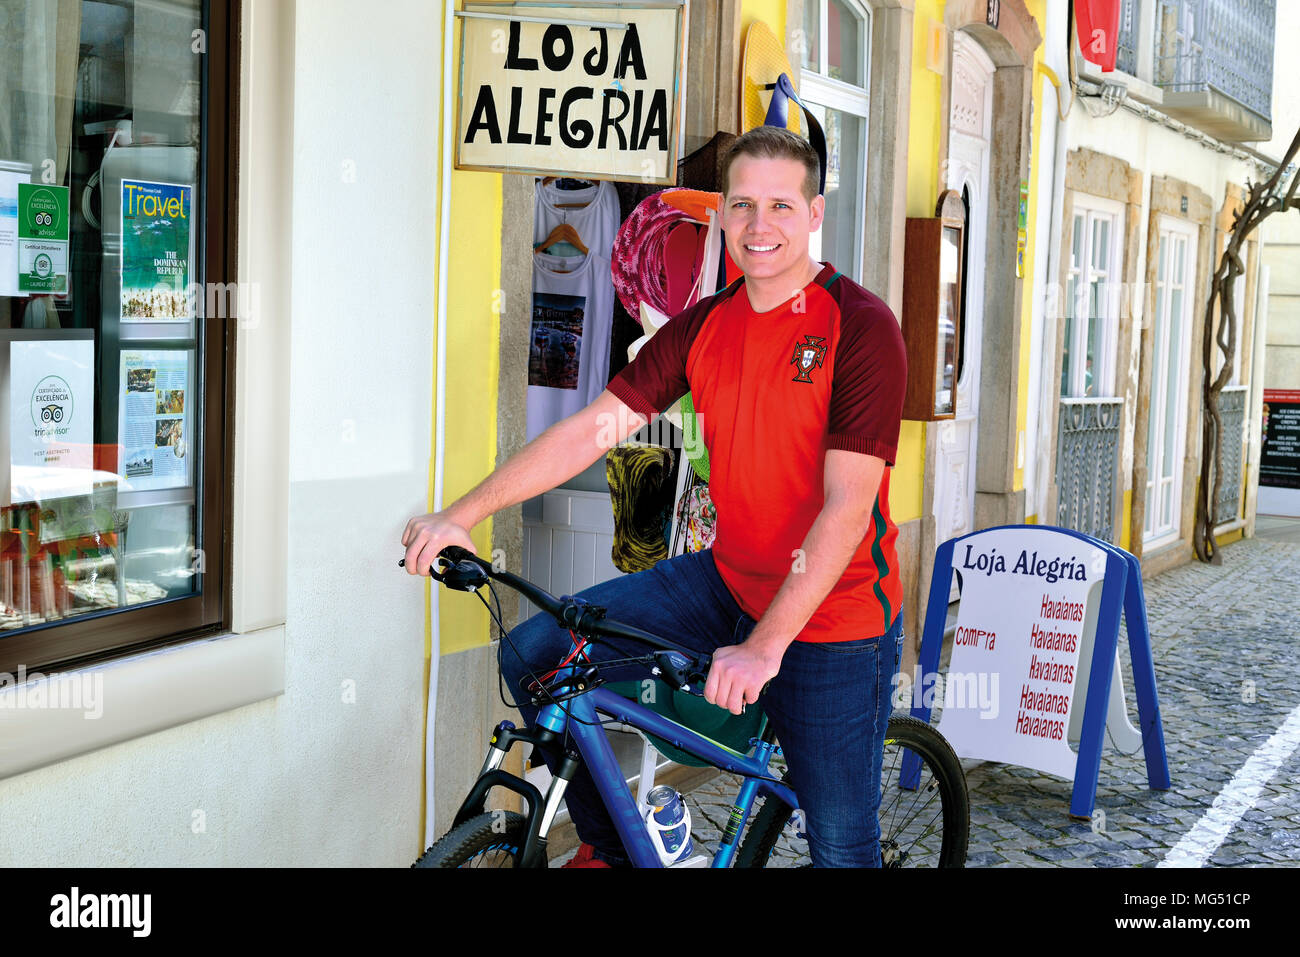 Young blond man with portuguese national  soccer team shirt sitting on a bike and smiling to the camera - Stock Image